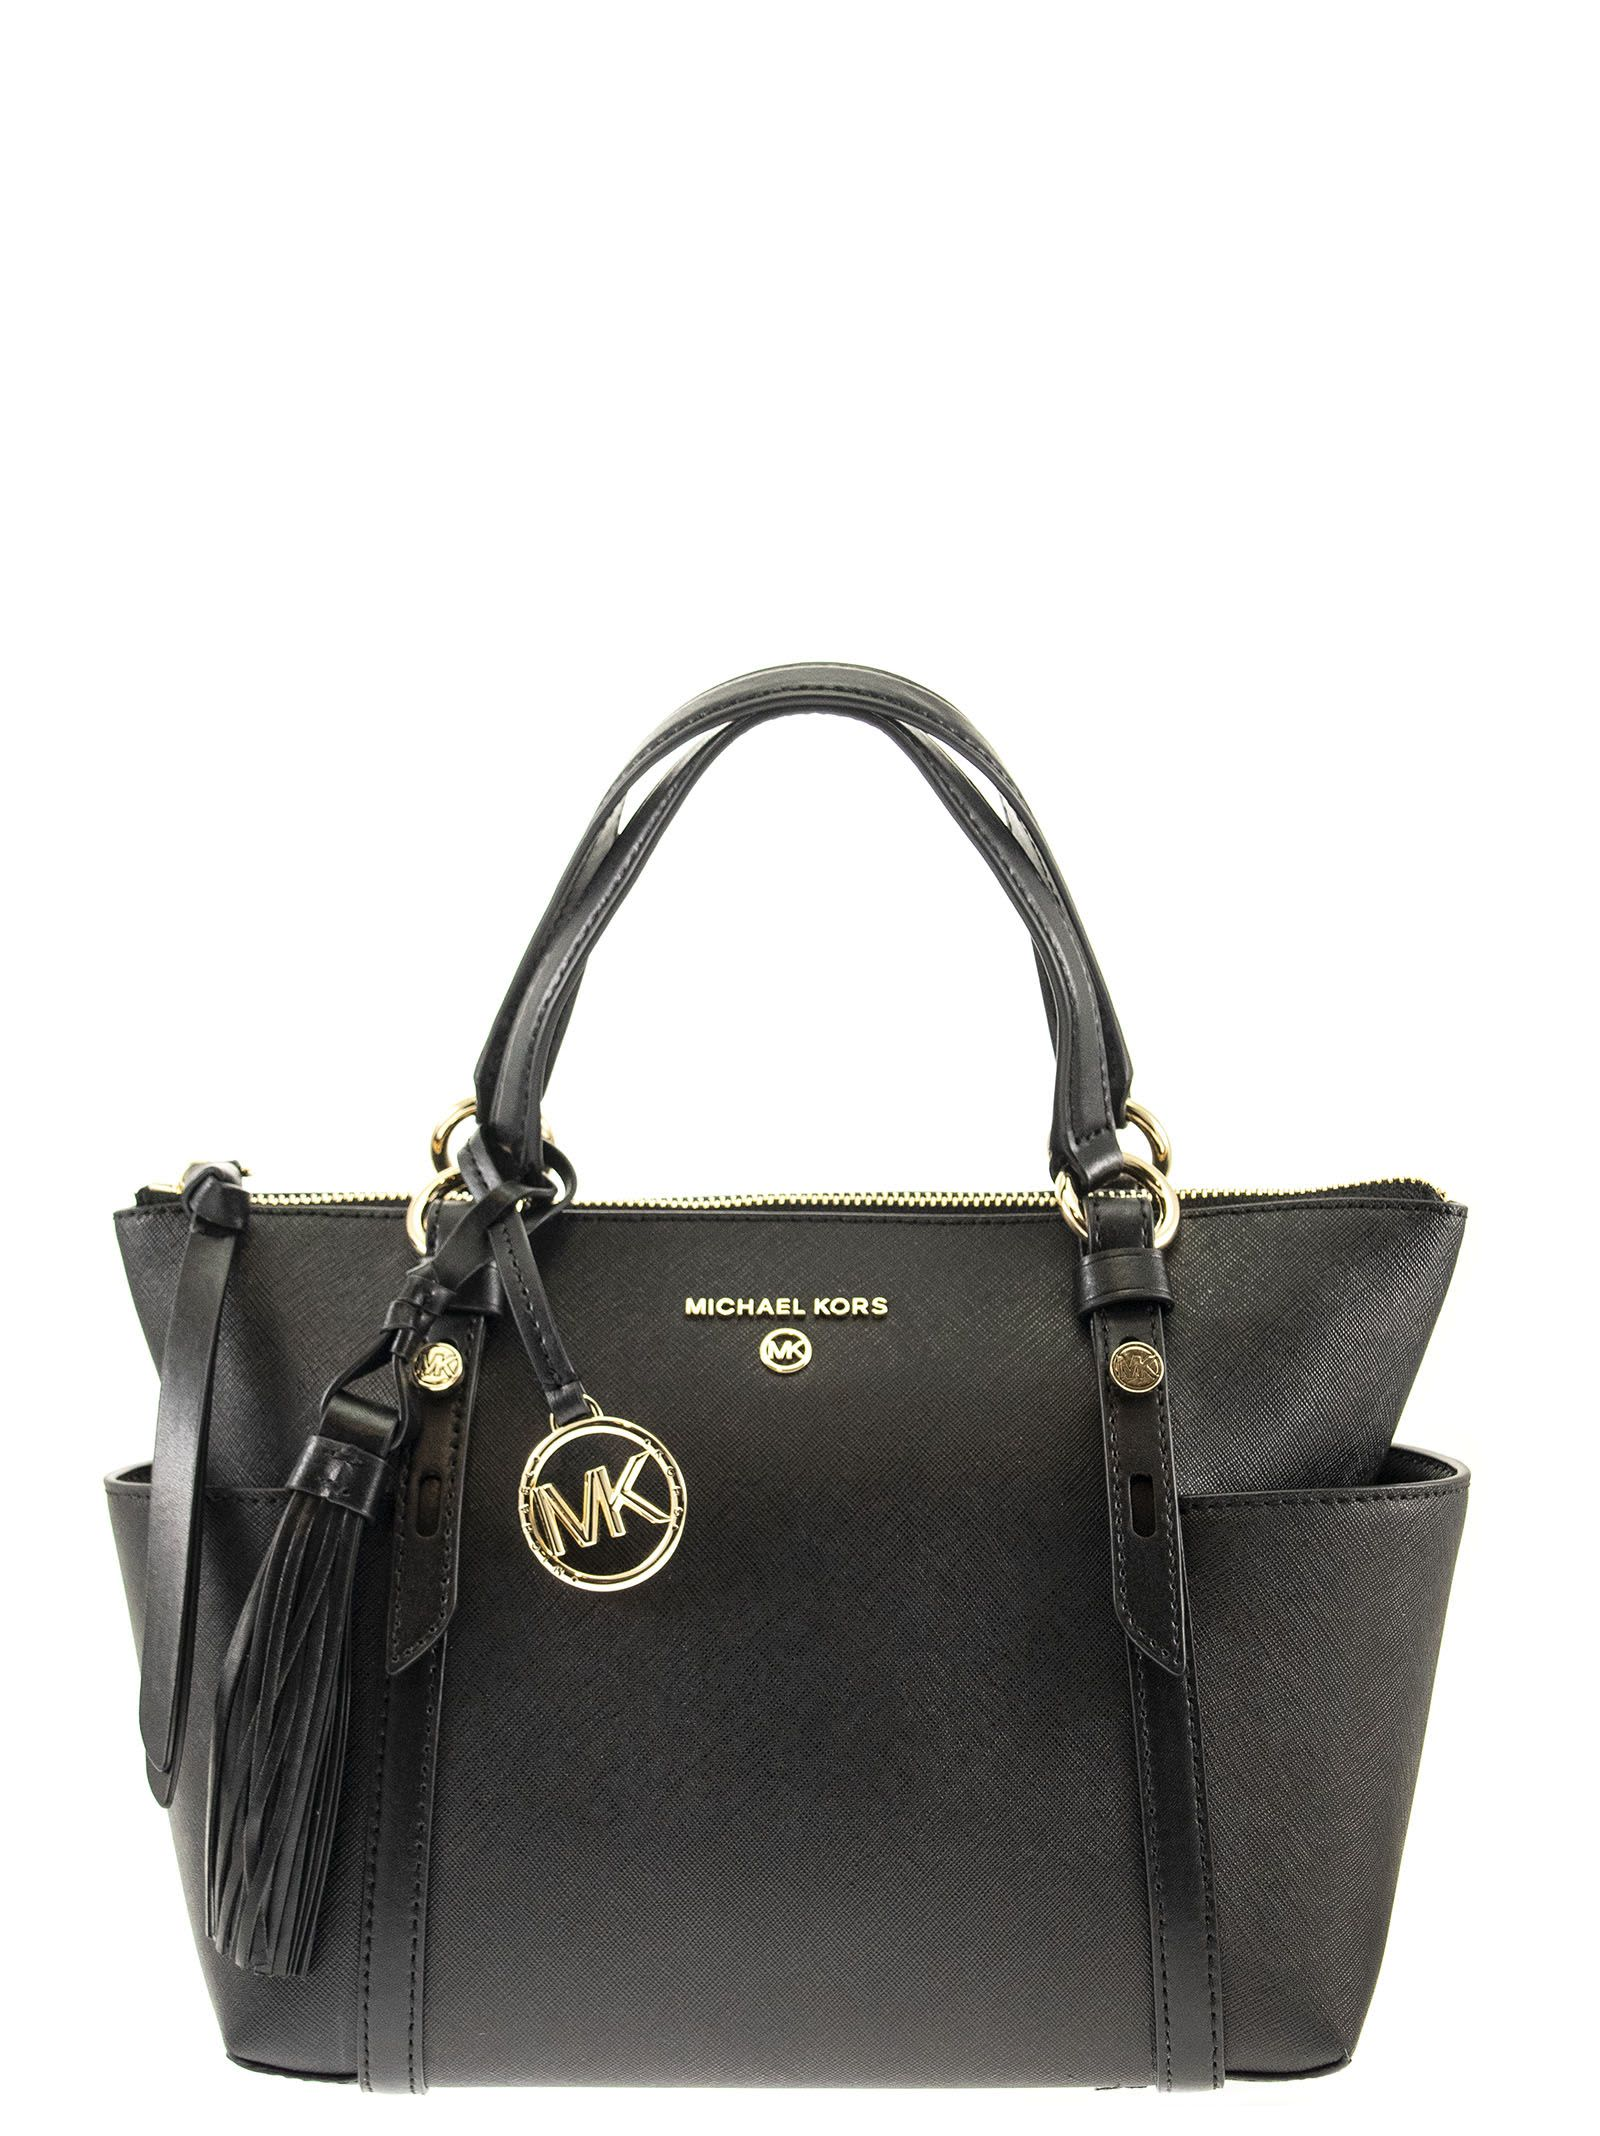 Michael Kors NOMAD SMALL SAFFIANO LEATHER TOP-ZIP TOTE BAG